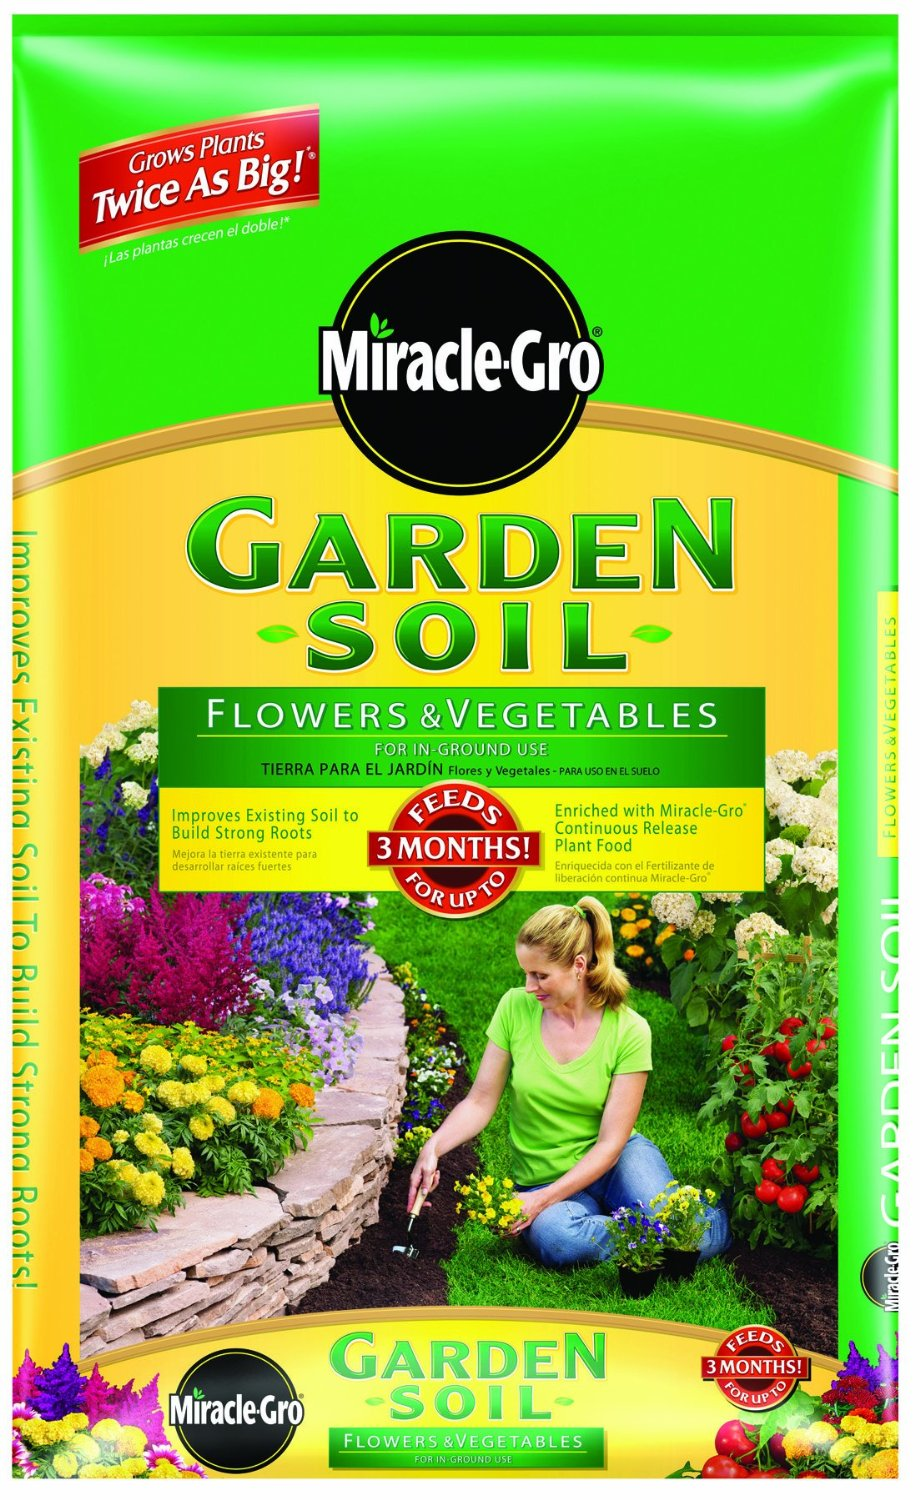 Miracle-Gro Garden Soil For Flowers and Vegetables, 1-Cubic Foot